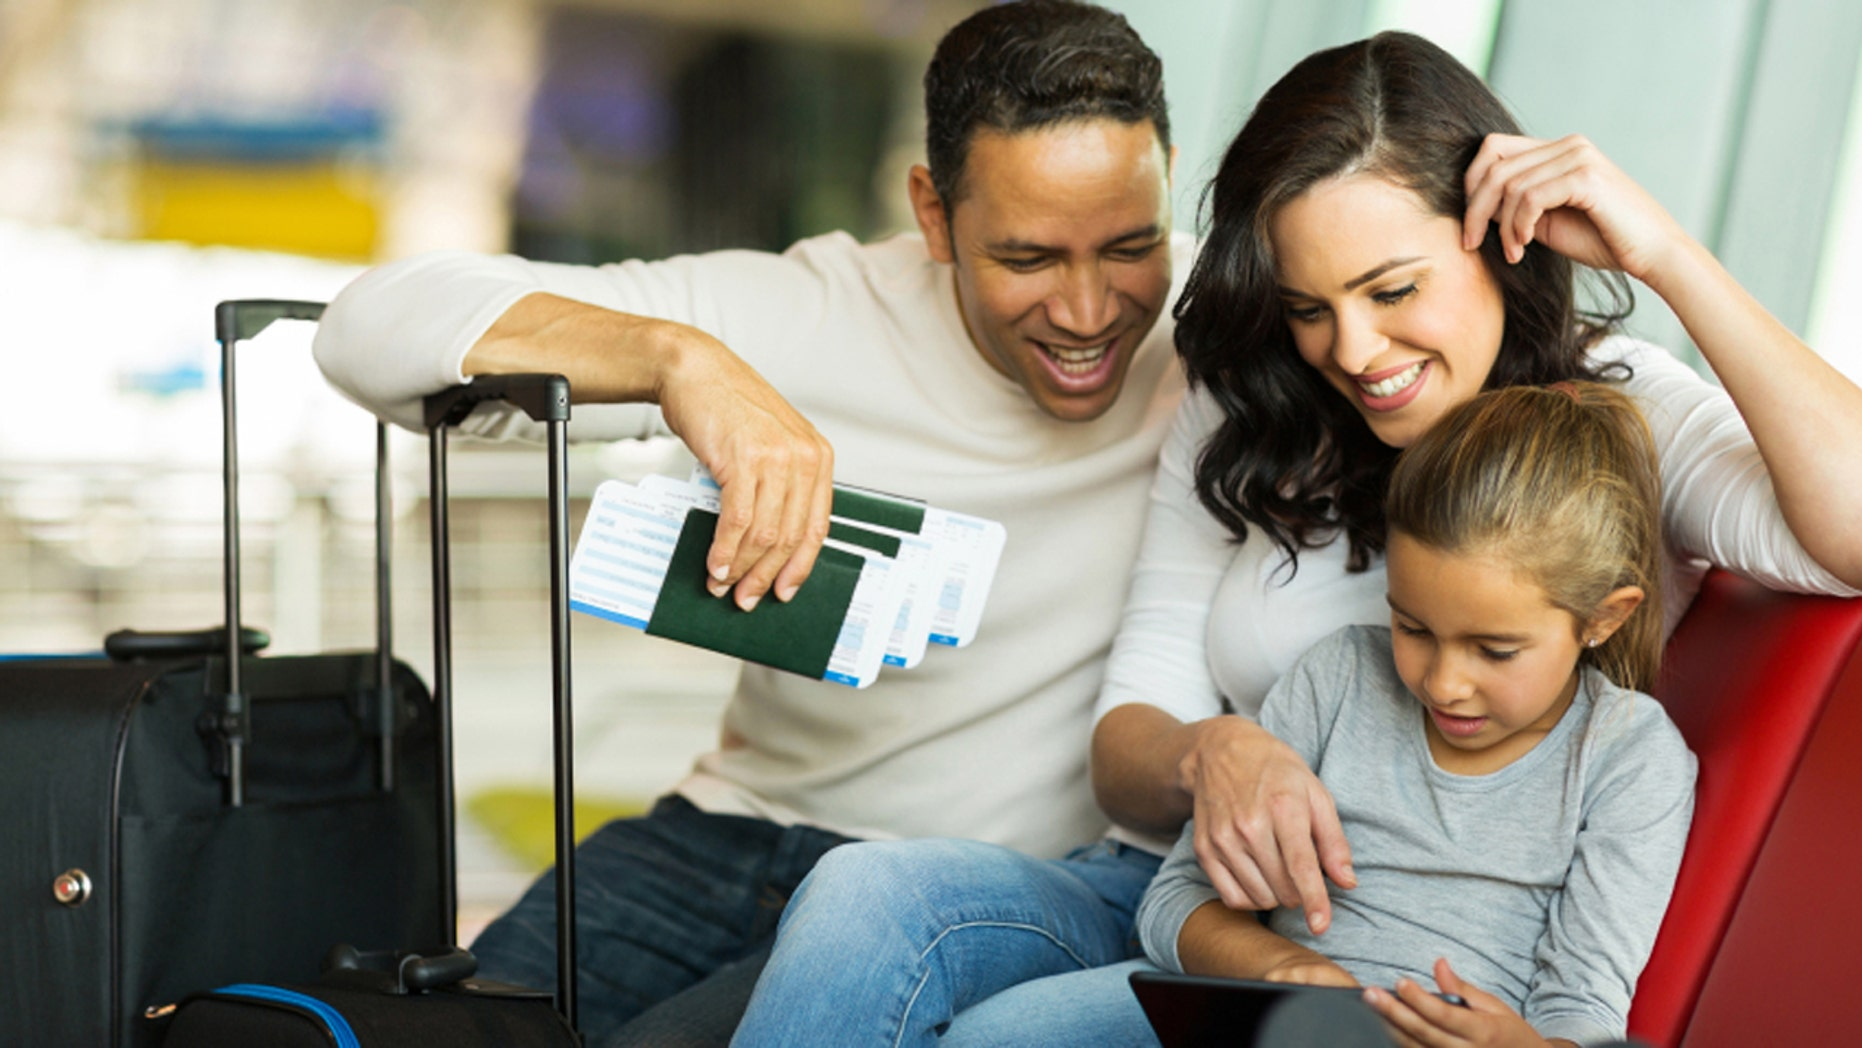 Give gifts that inspire the whole family to travel.